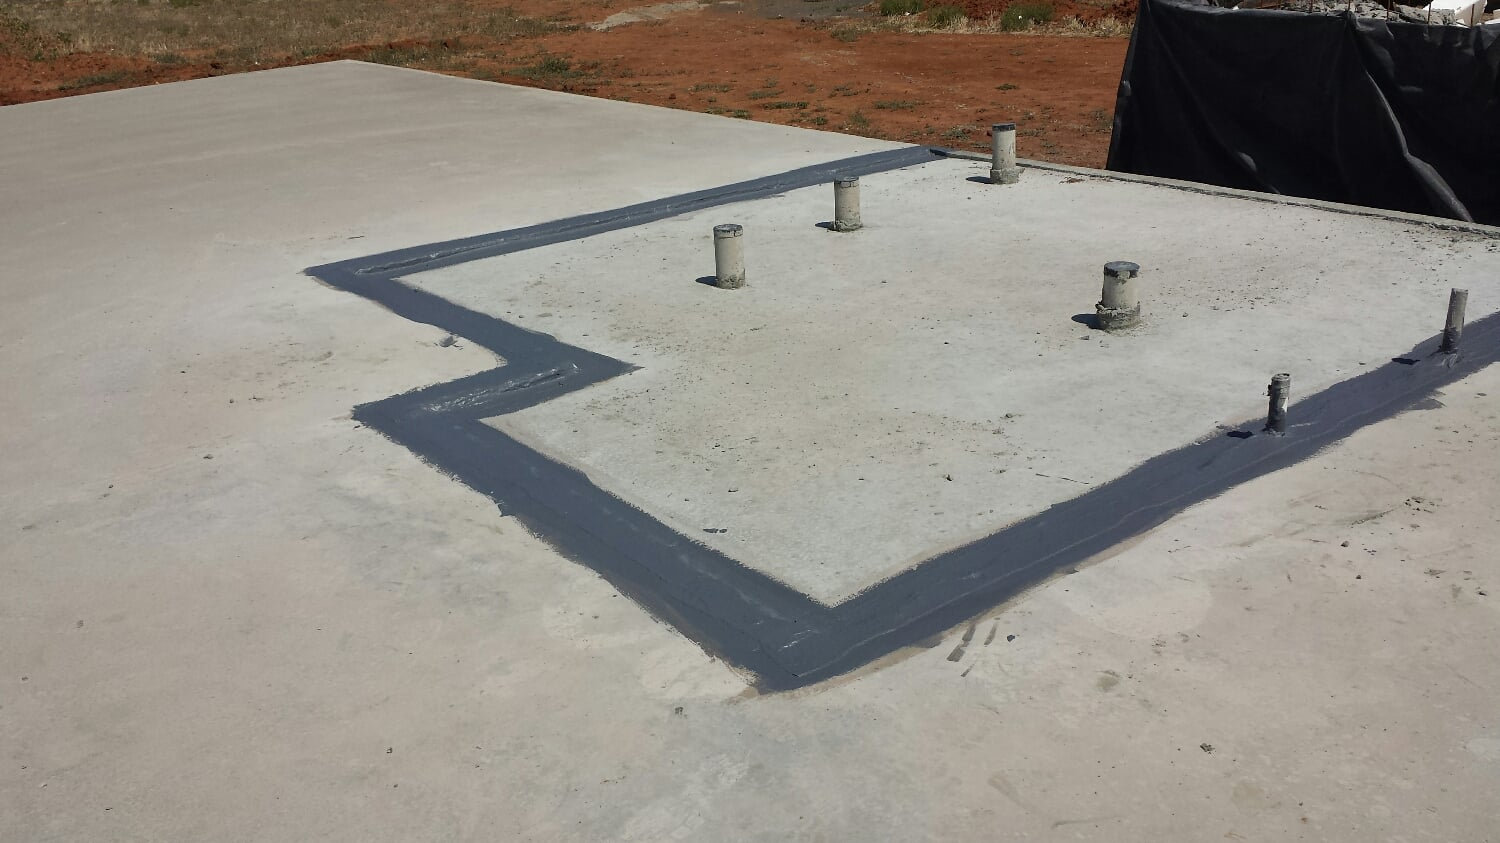 Joins in a slab can potentially be a termite entry point. It's important to ensure that these joins are treated.